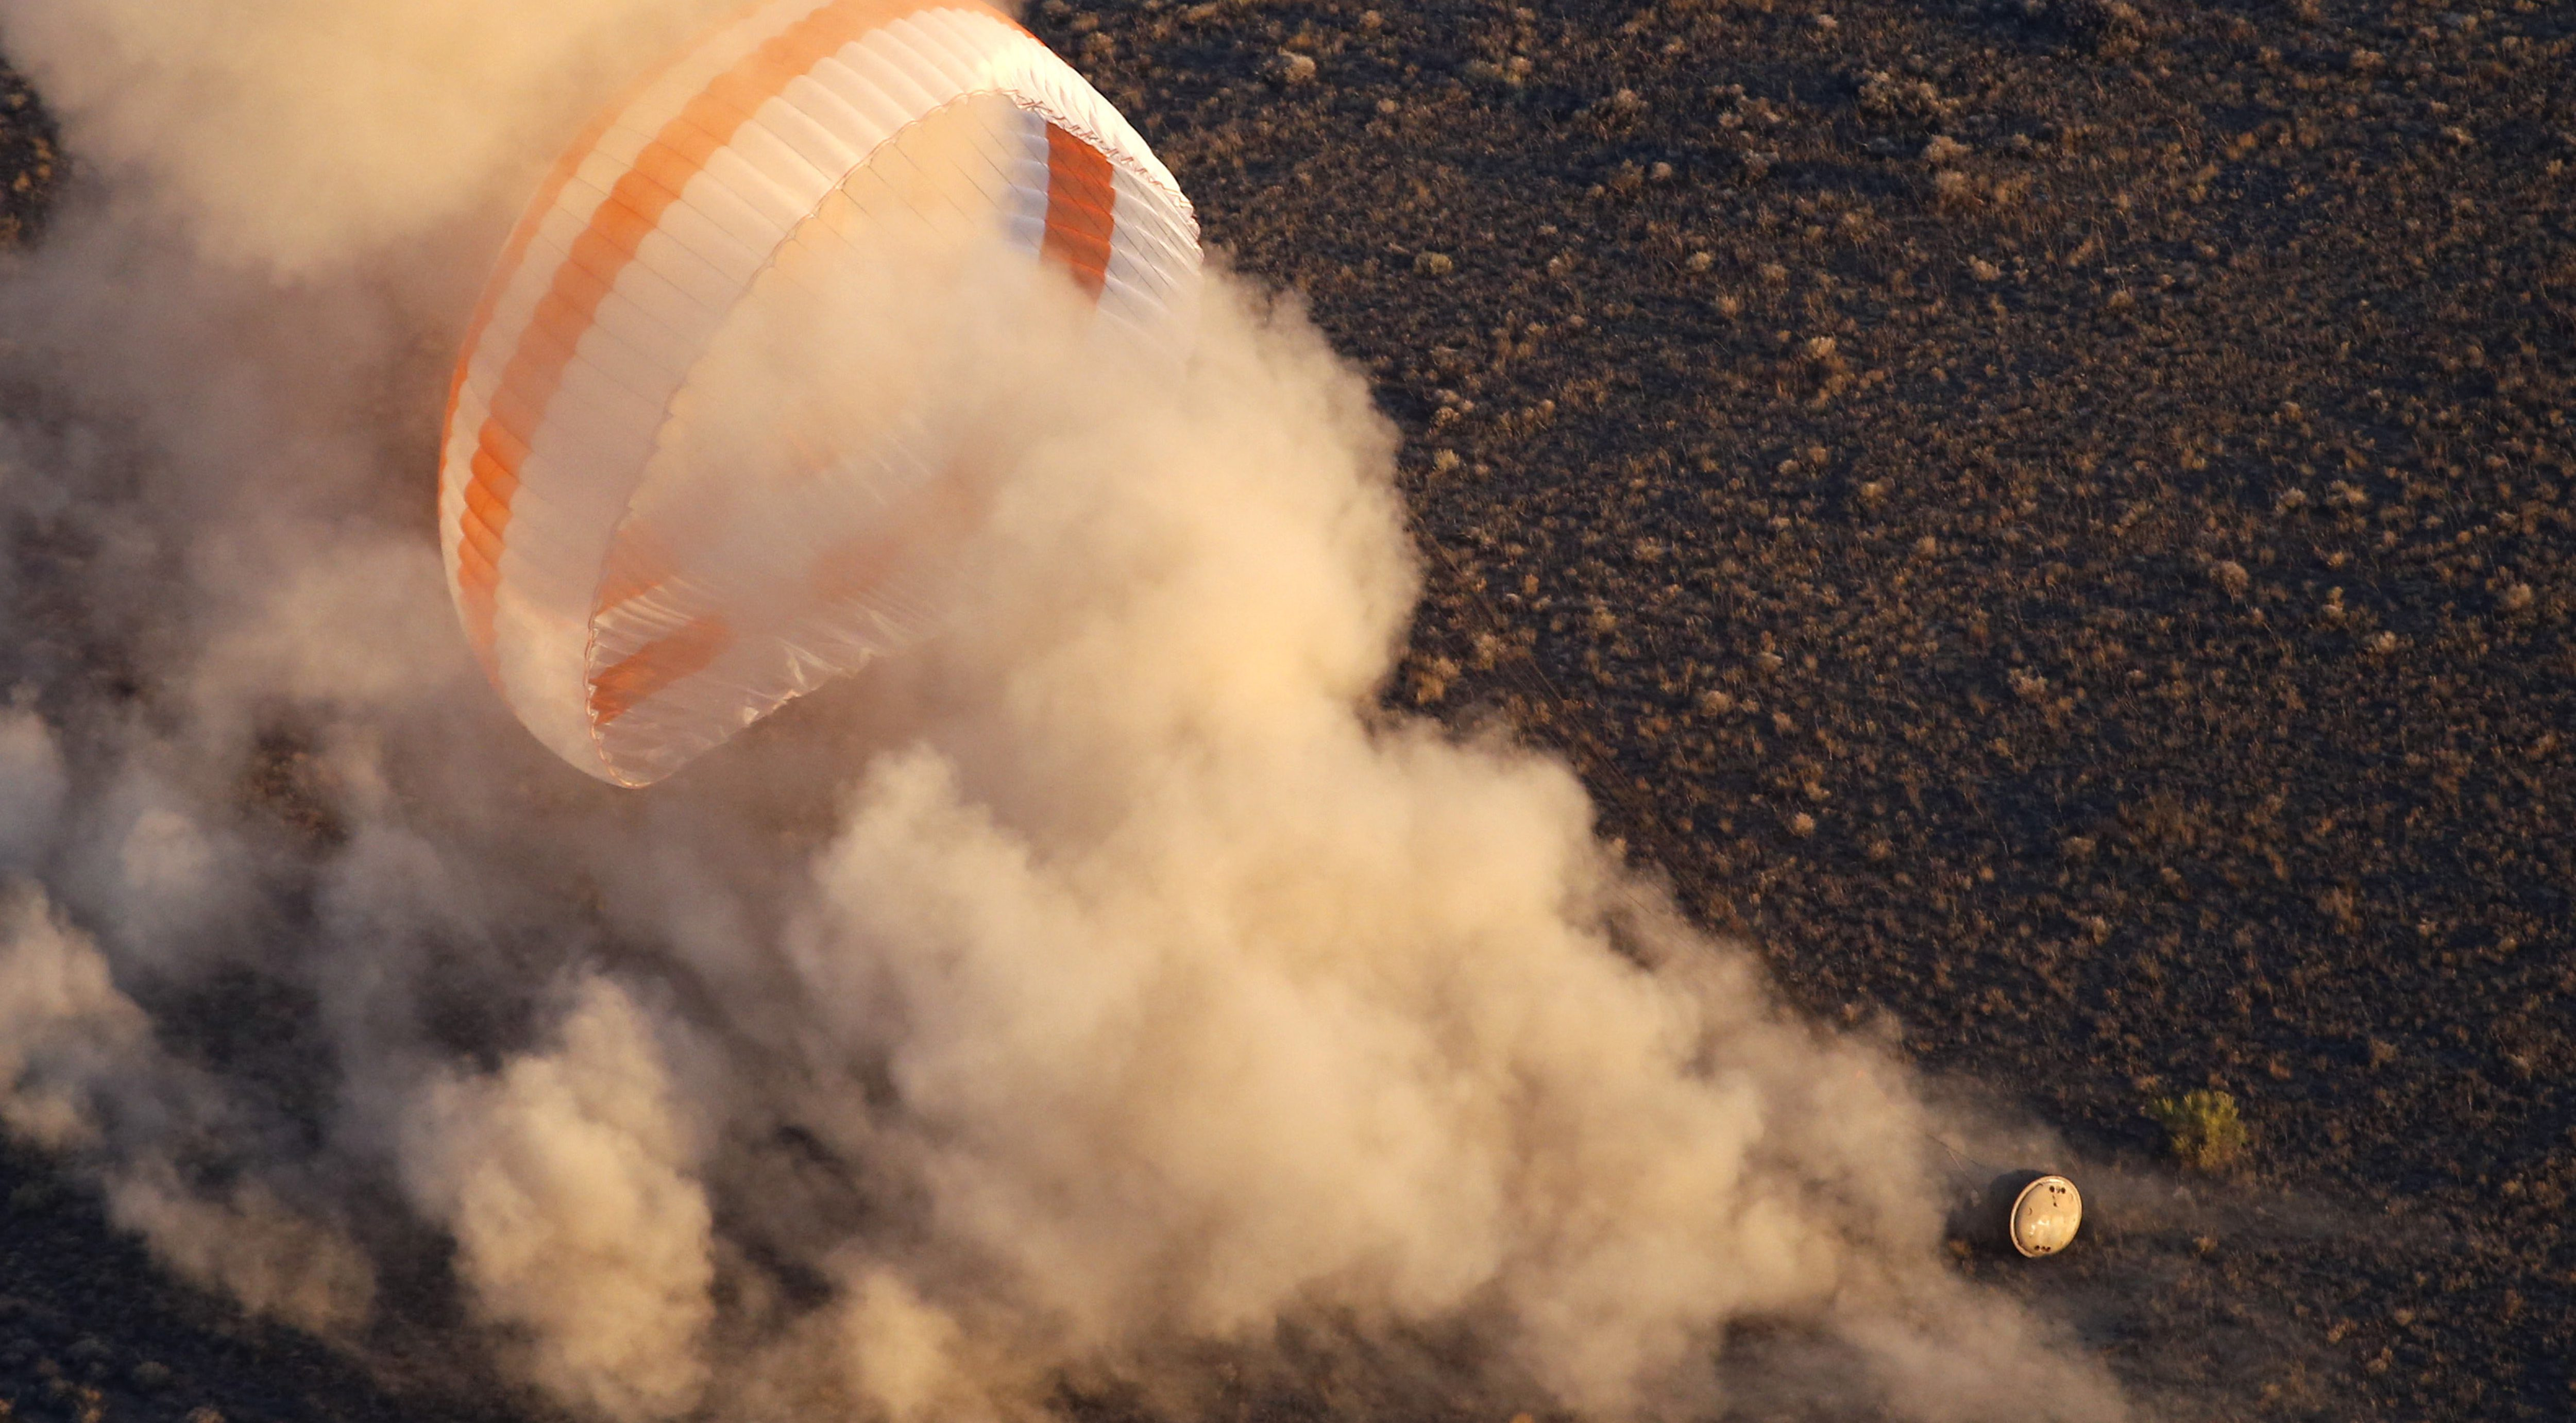 Astronauts just returned to Earth from the International Space Station, landing in Kazakhstan.